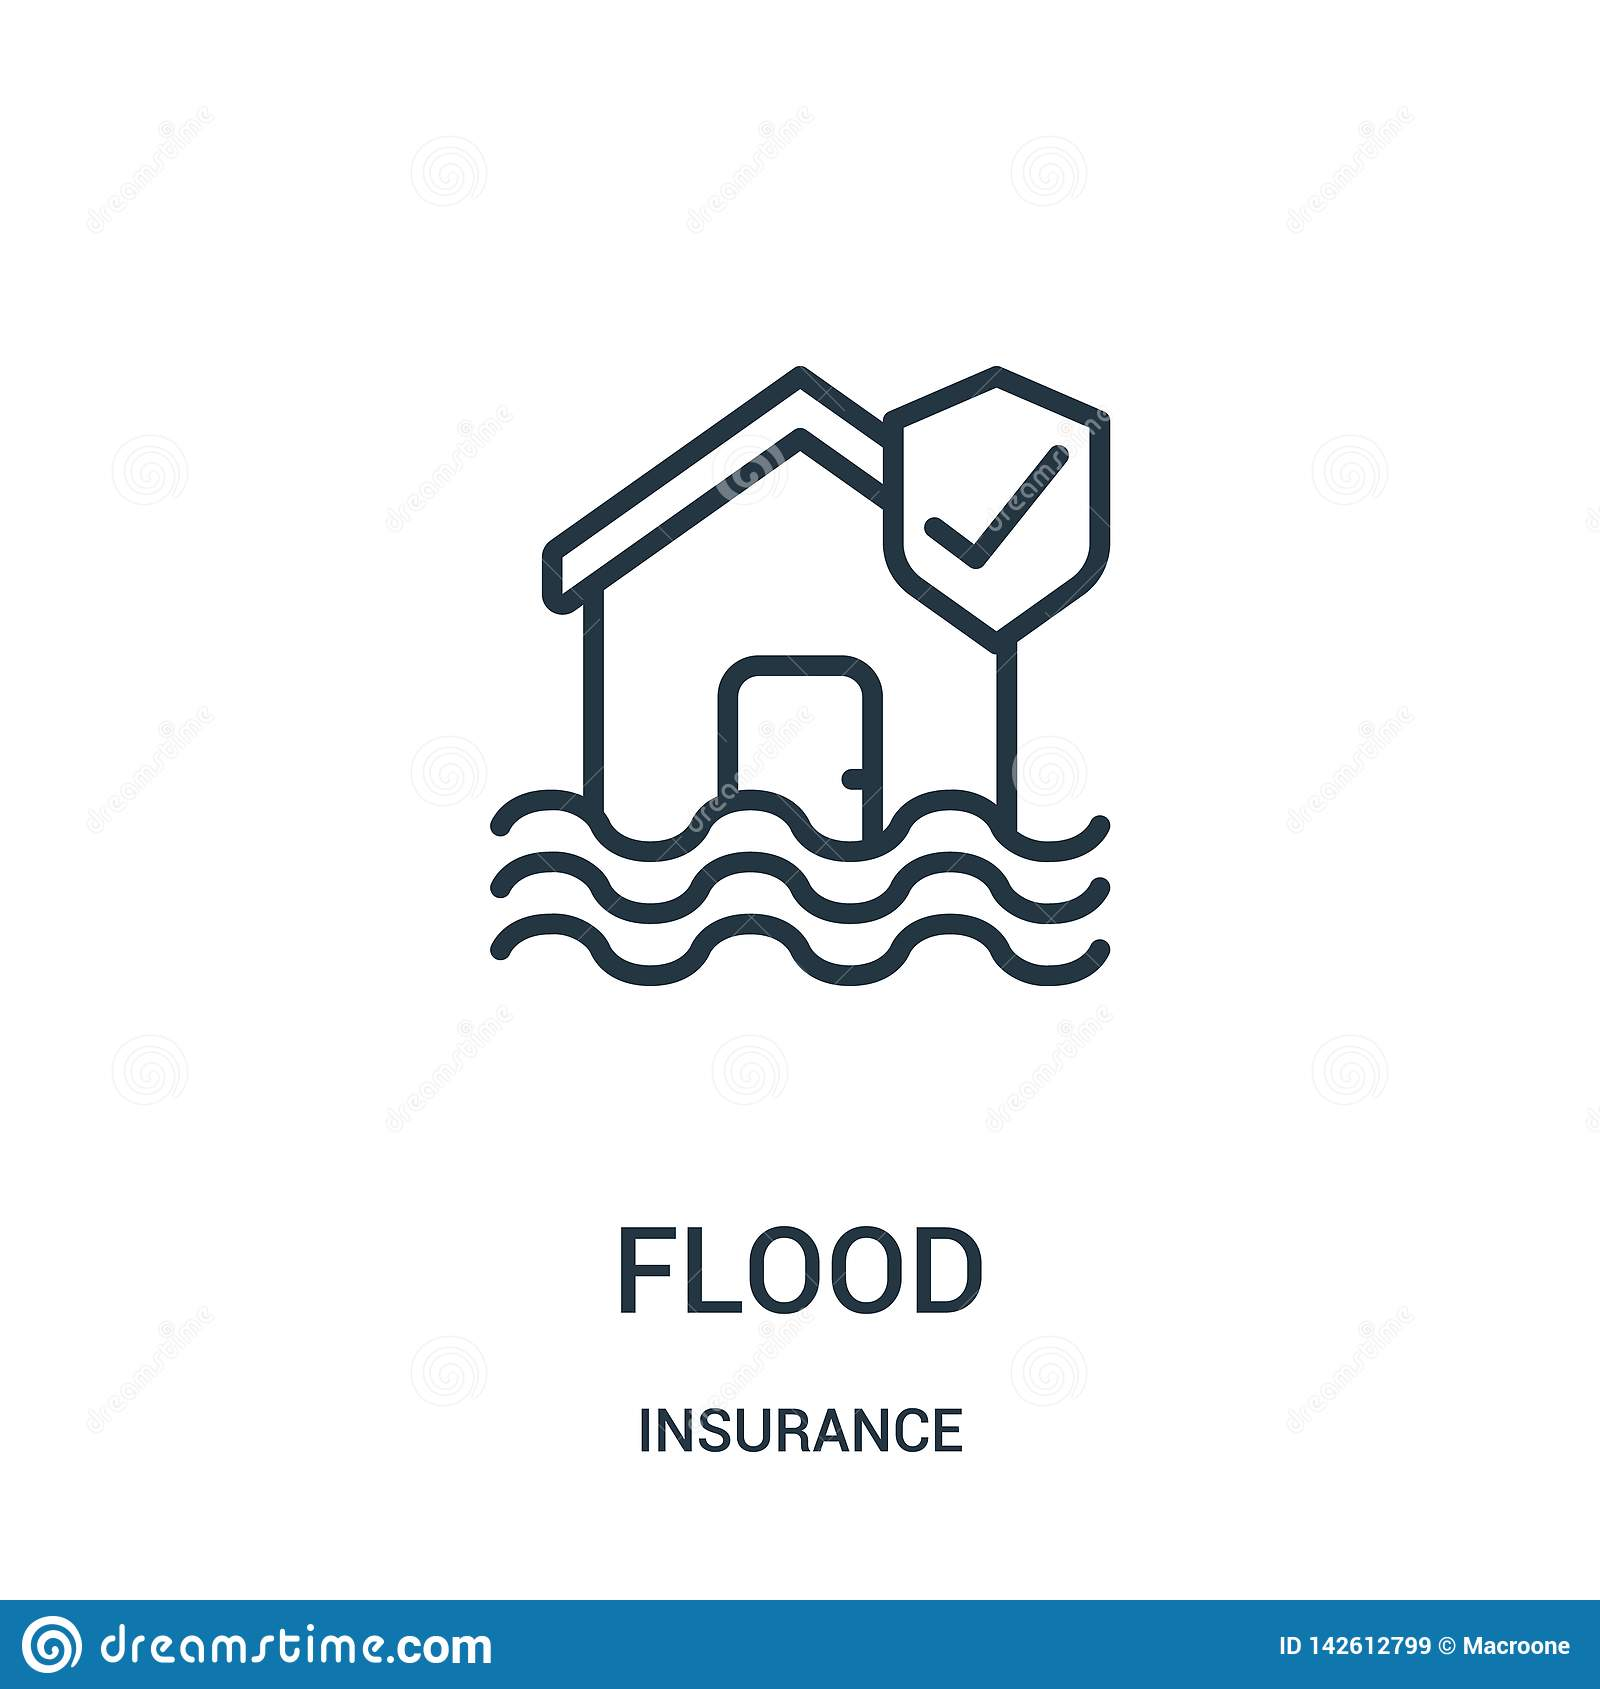 flood icon vector from insurance collection. Thin line flood outline icon vector illustration. Linear symbol